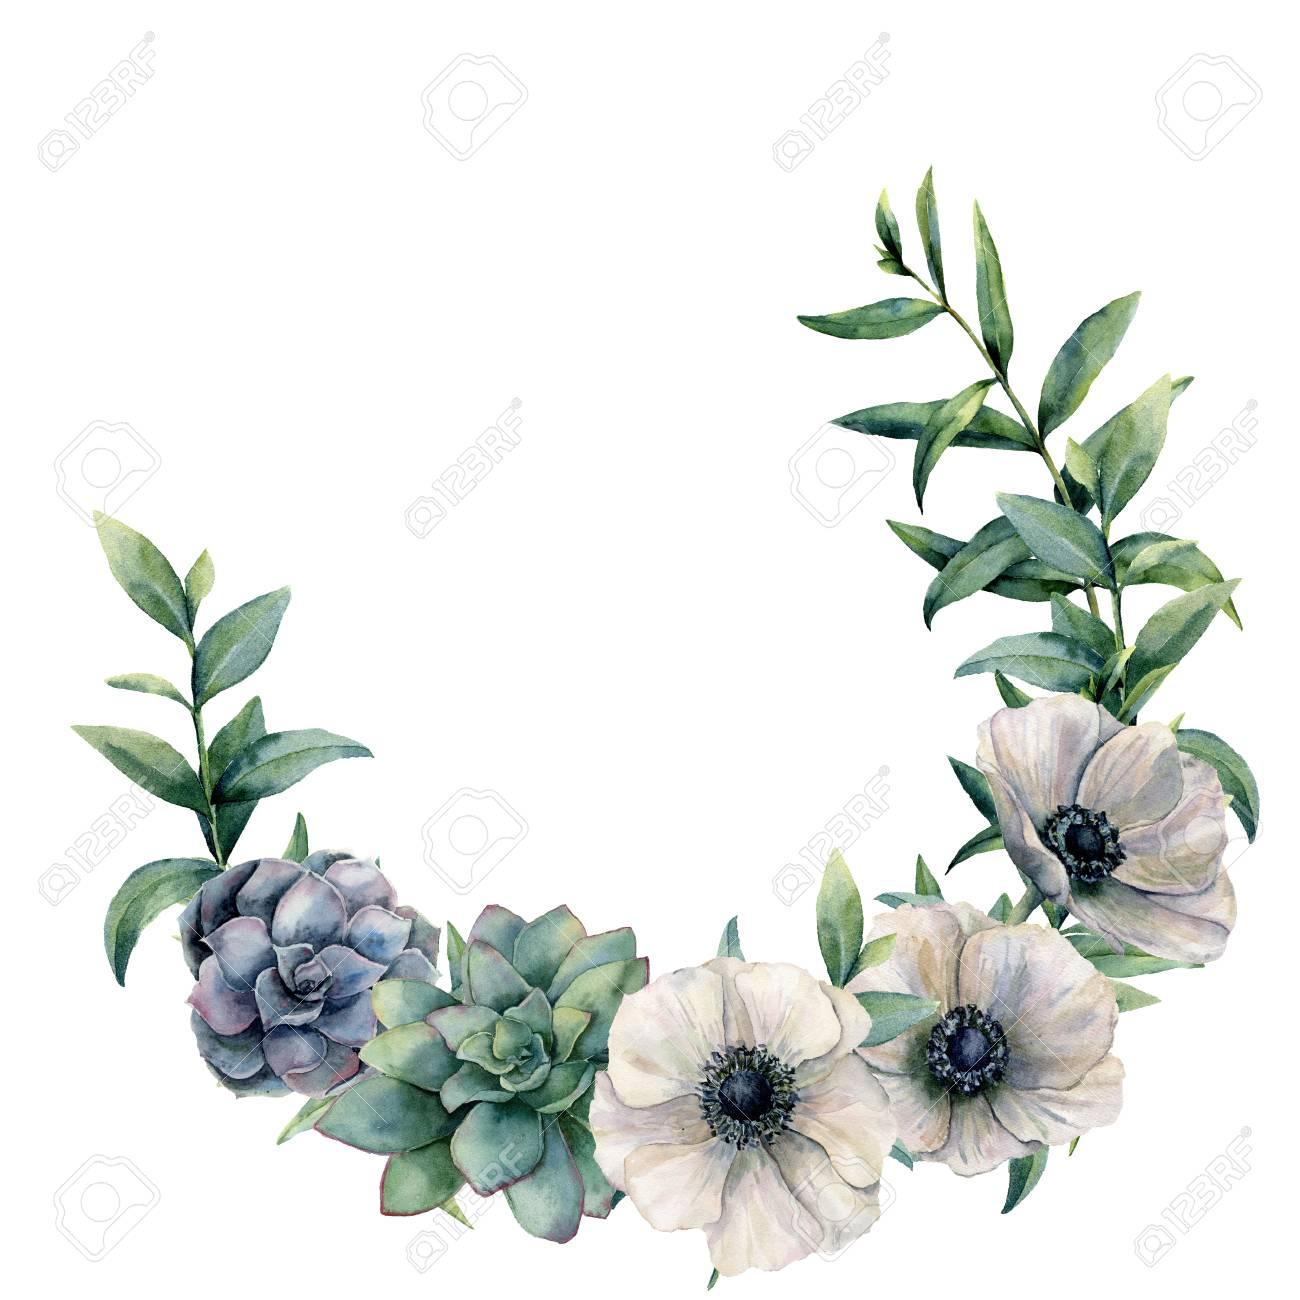 Watercolor Anemone And Succulent Wreath Hand Painted White Stock Photo Picture And Royalty Free Image Image 99287681